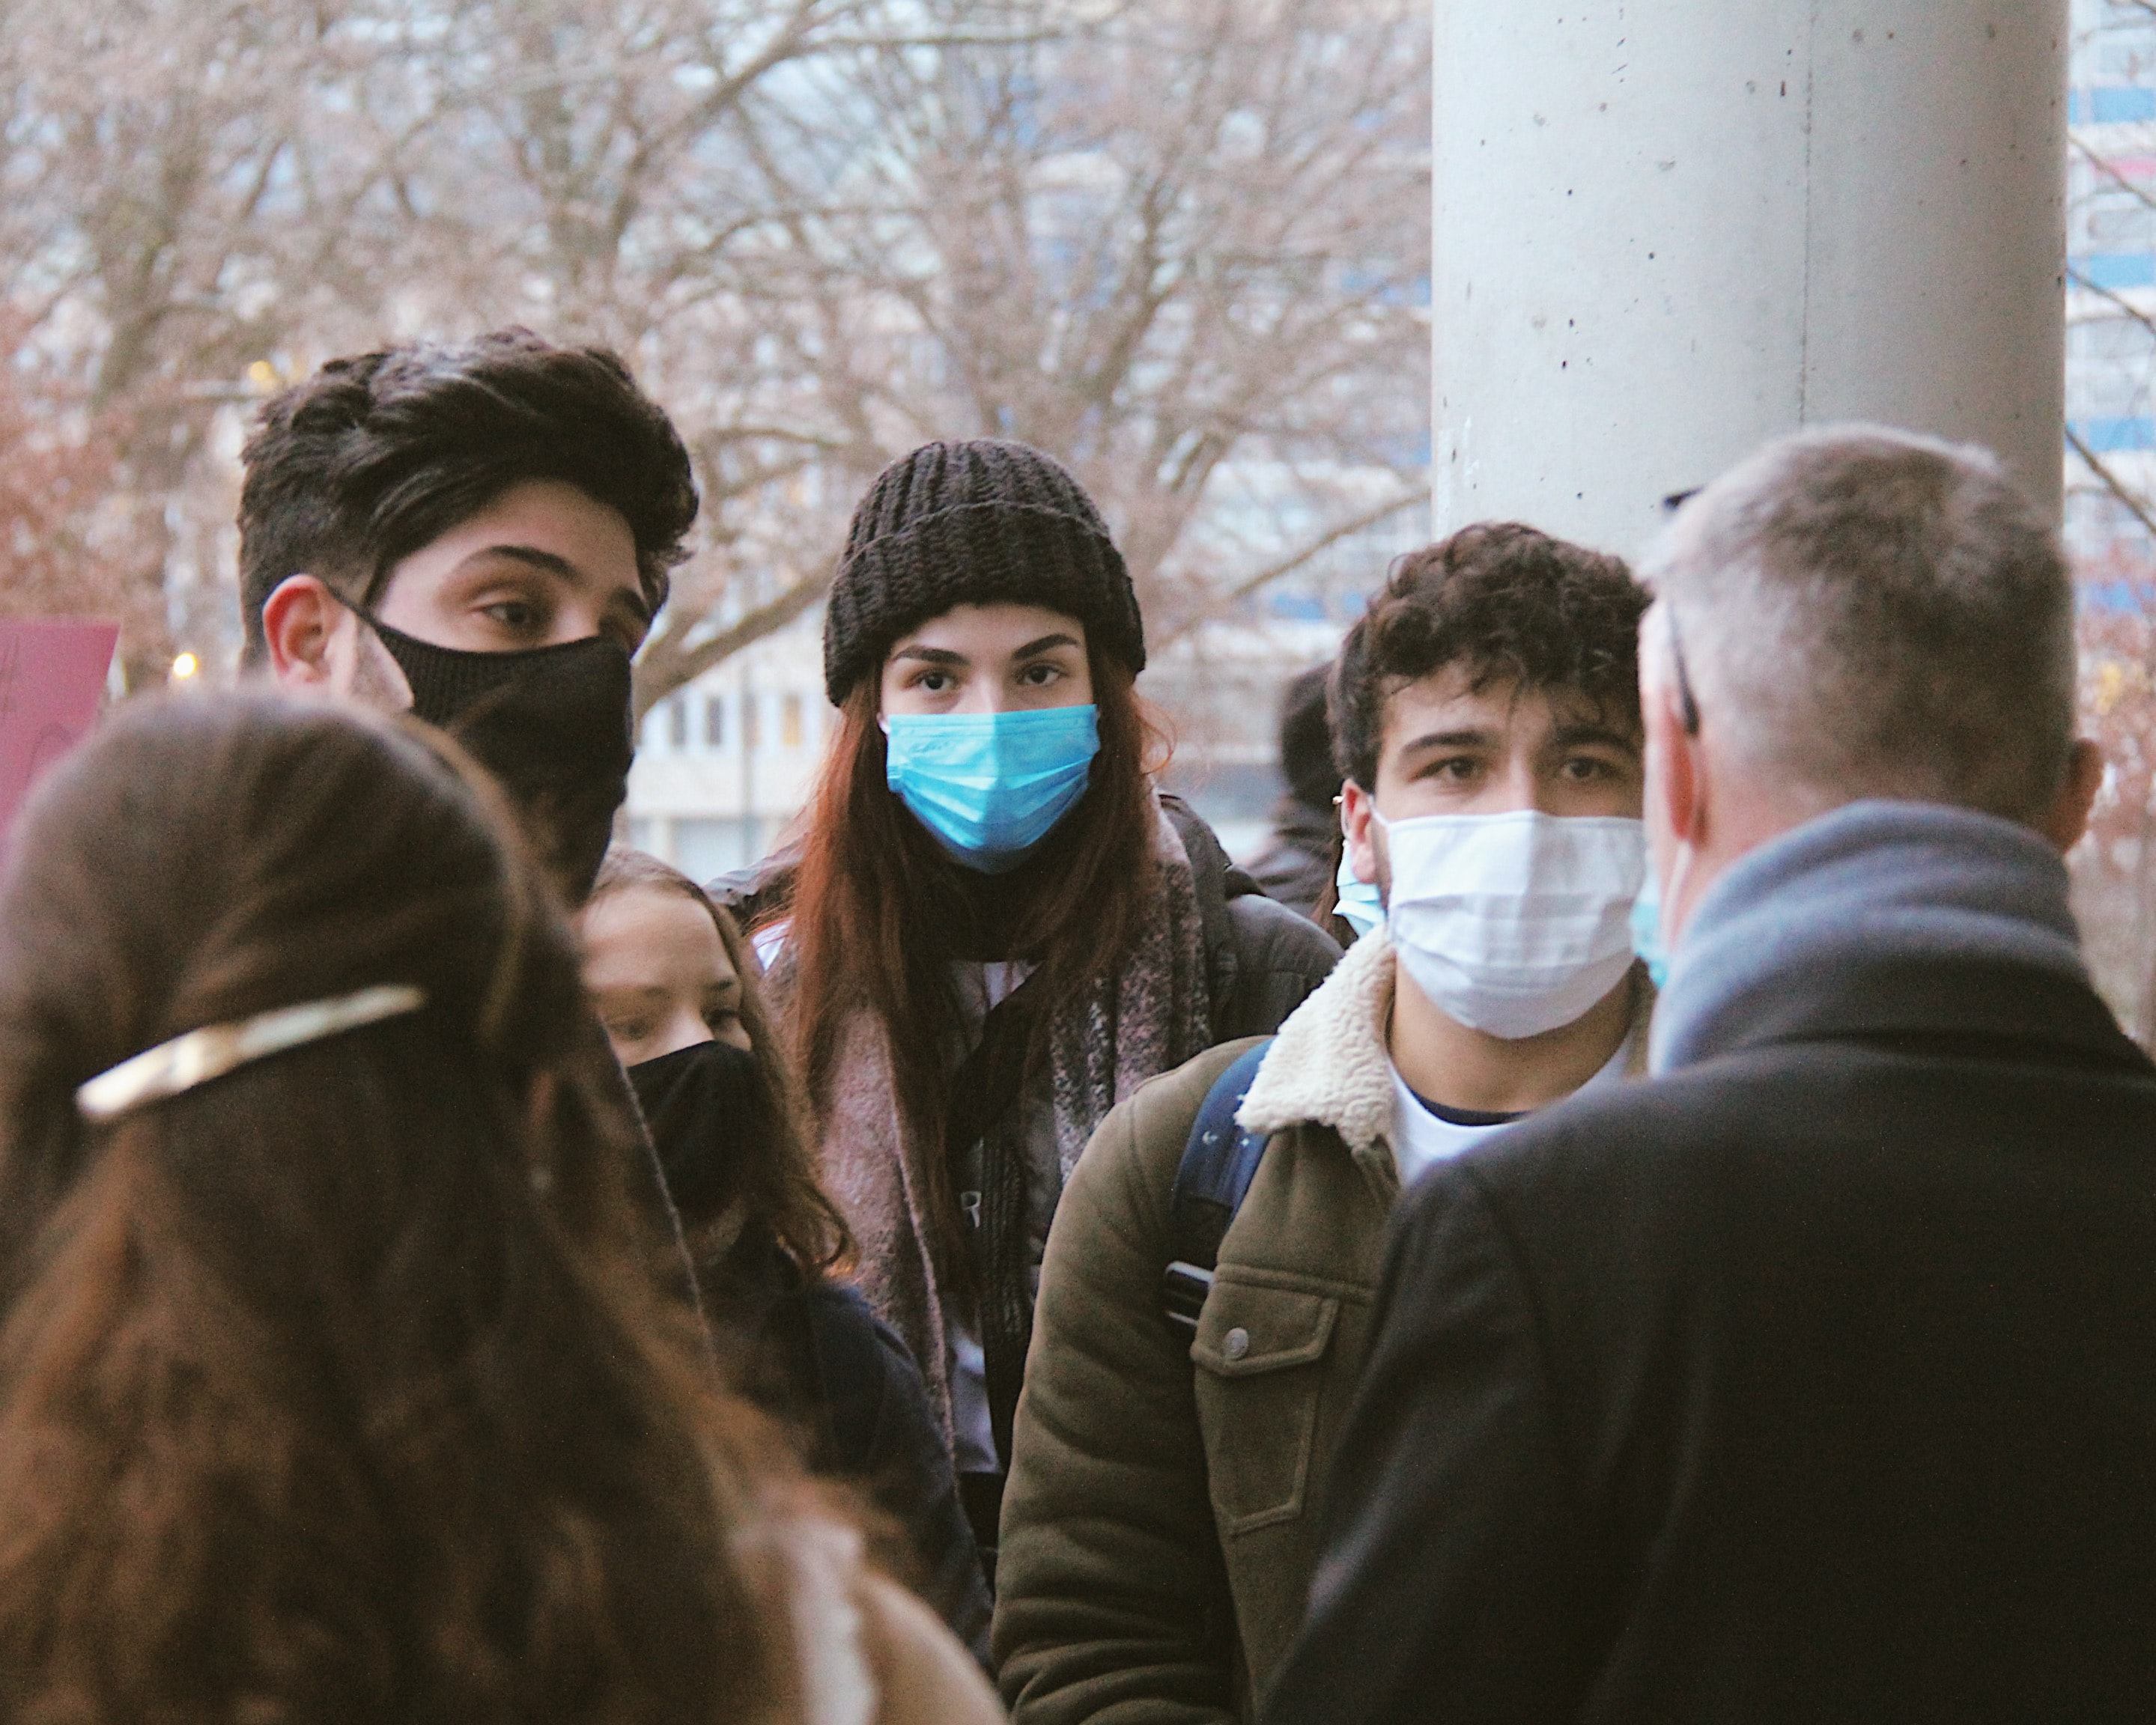 Students standing outside in winter coats and medical face masks